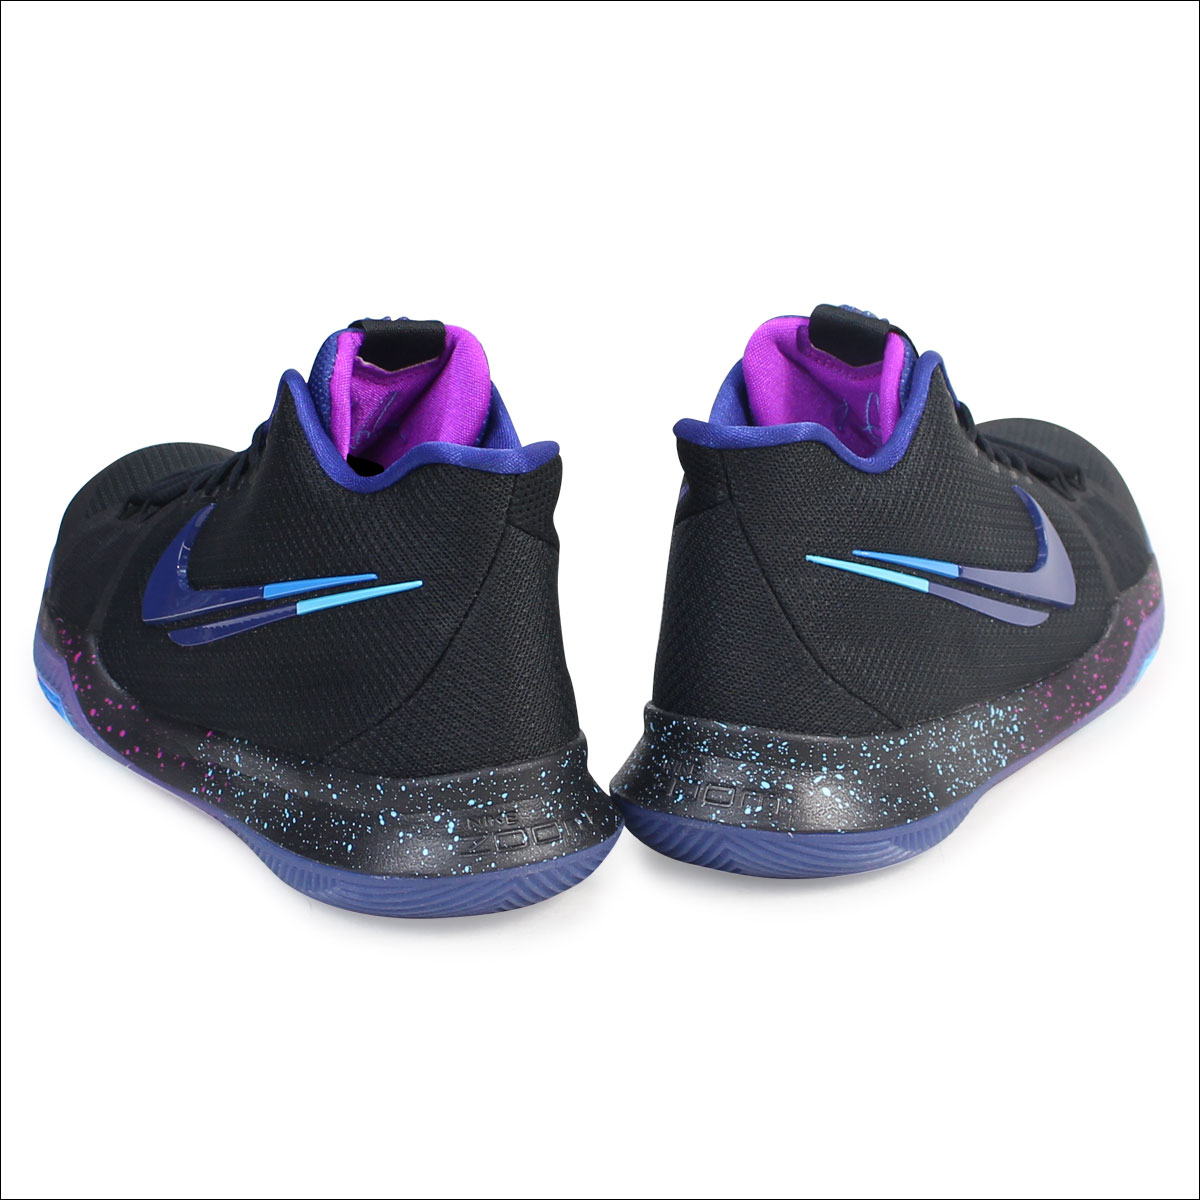 big sale 47231 2aa11 NIKE Nike chi Lee 3 sneakers KYRIE 3 FLIP THE SWITCH 852,396-003 men's  shoes black black